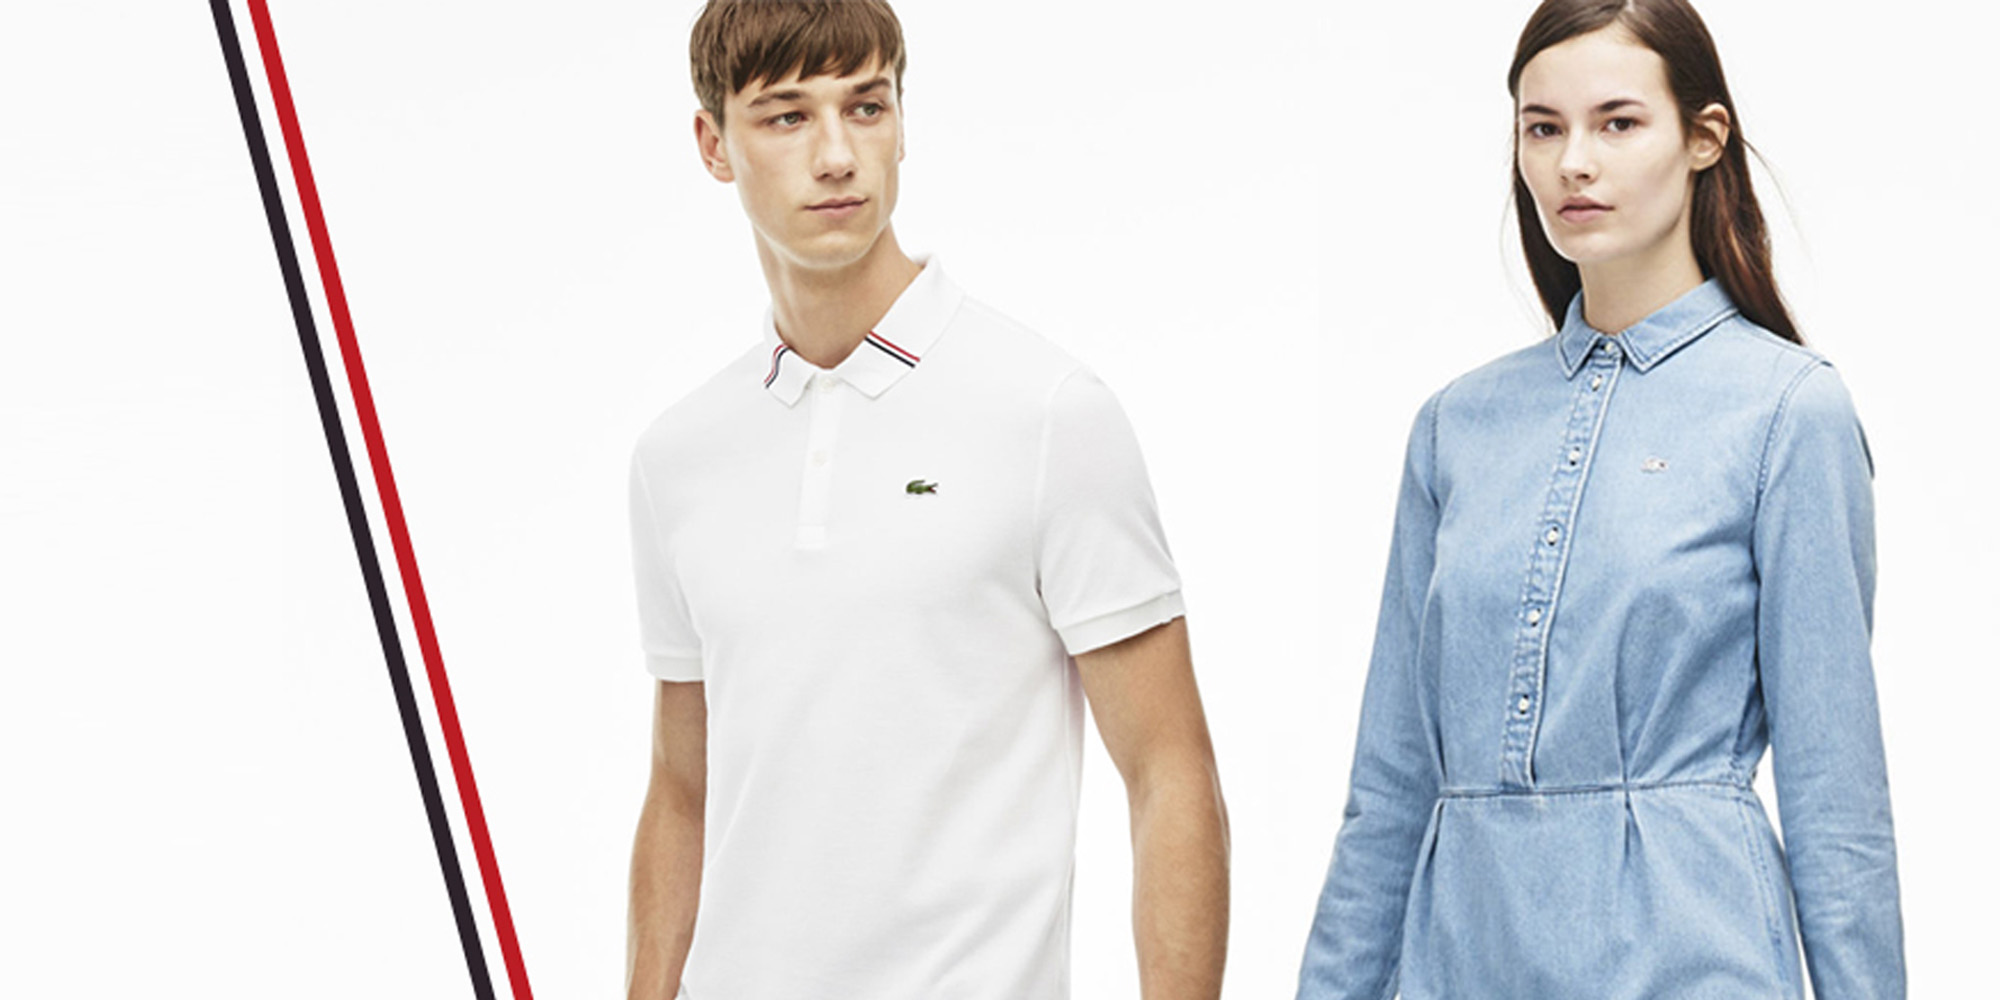 f8594048fa12 Lacoste Semi-Annual Sale takes up to 50% off apparel for men and women